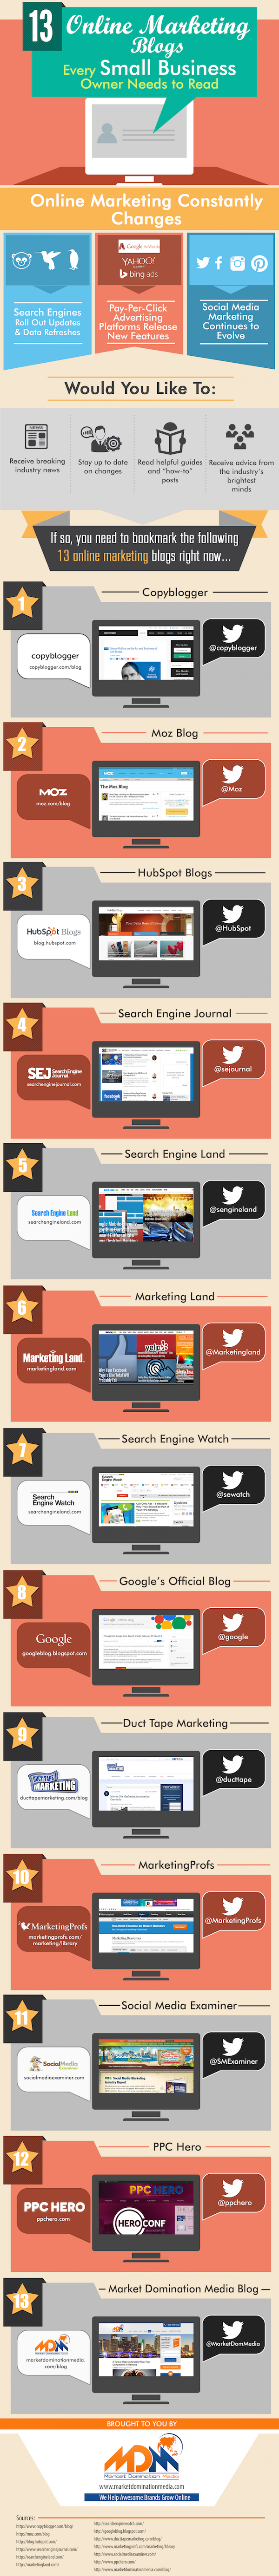 13 Digital Marketing Blogs You Must Read - Infographic